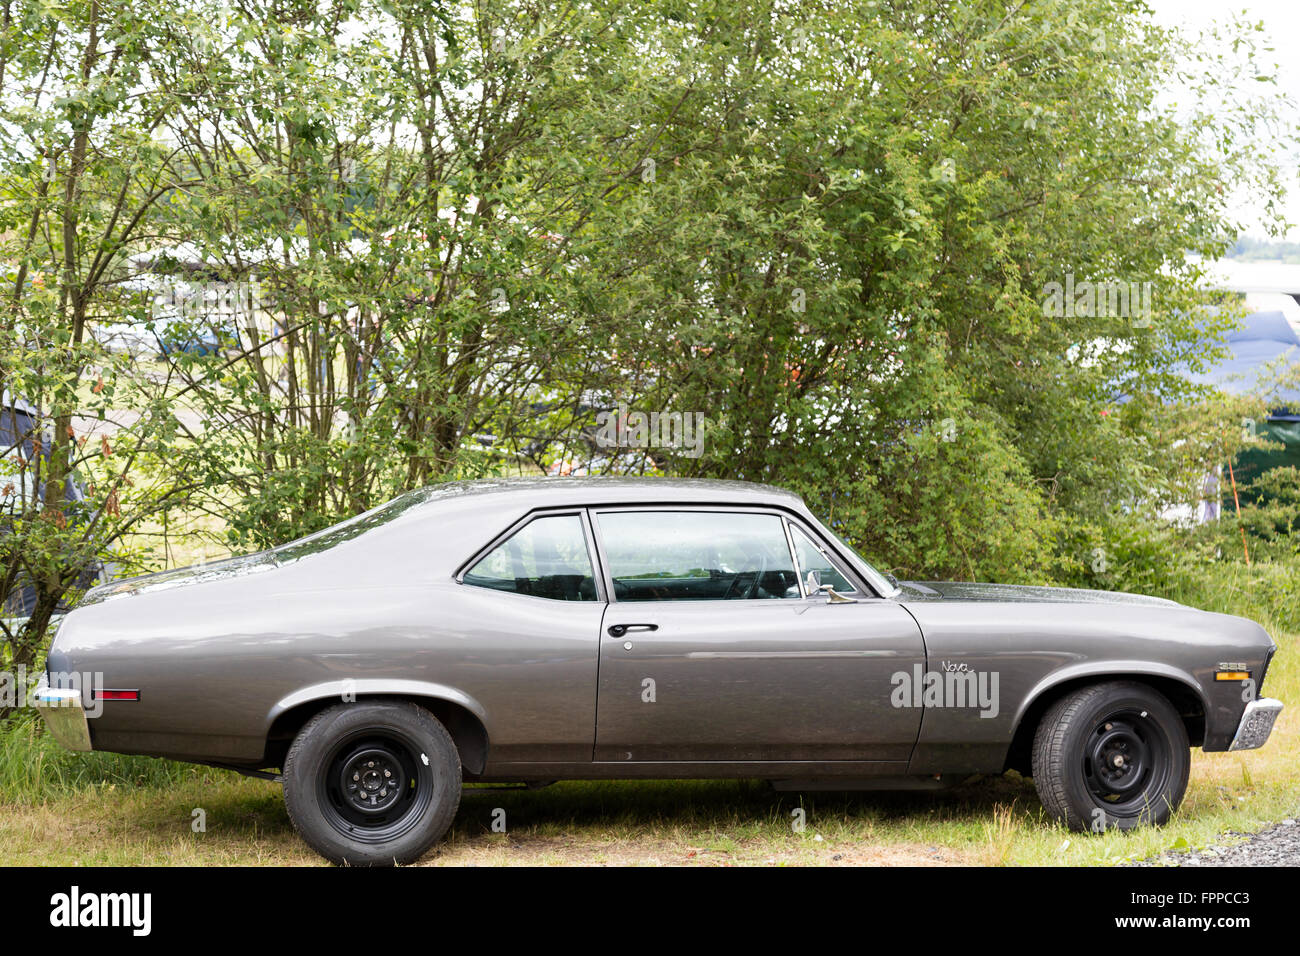 Us Vintage Car Side View Stock Photo Royalty Free Image